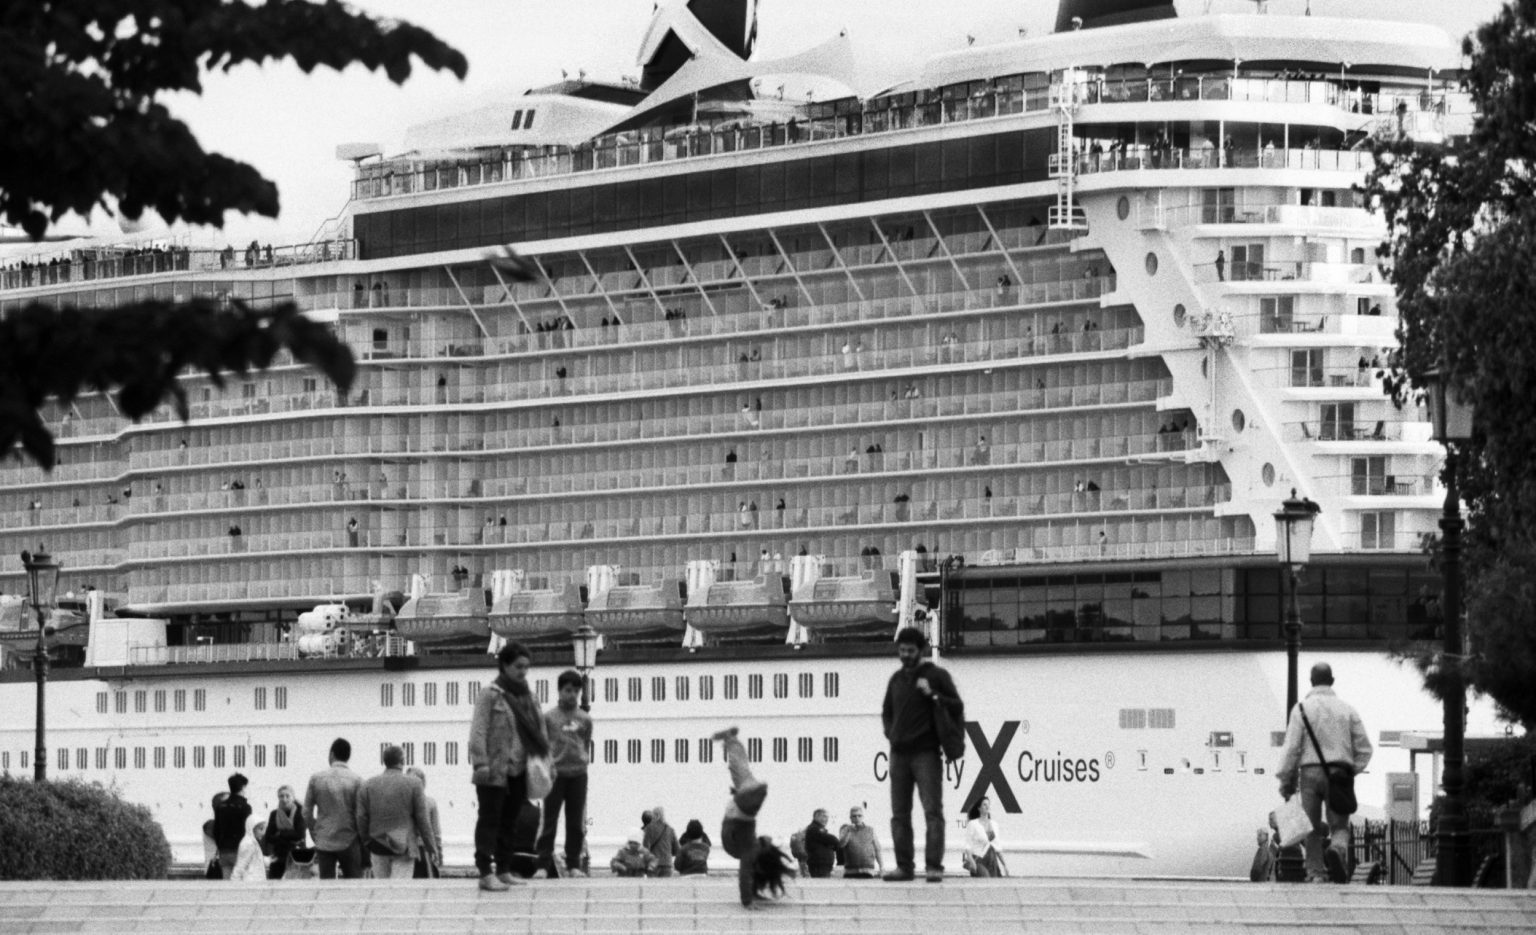 """Venice, August 2013 - Big cruise liners invade the city - Celebrity Cruises cruise ship passing by the old town ><  Venezia, agosto 2013 - Le grandi navi da crociera invadono la città - Nave Celebrity Cruises passa davanti al centro storico<p><span style=""""color: #ff0000""""><strong>*** SPECIAL   FEE   APPLIES ***</strong></span></p>*** SPECIAL   FEE   APPLIES *** *** Local Caption *** 00551372"""